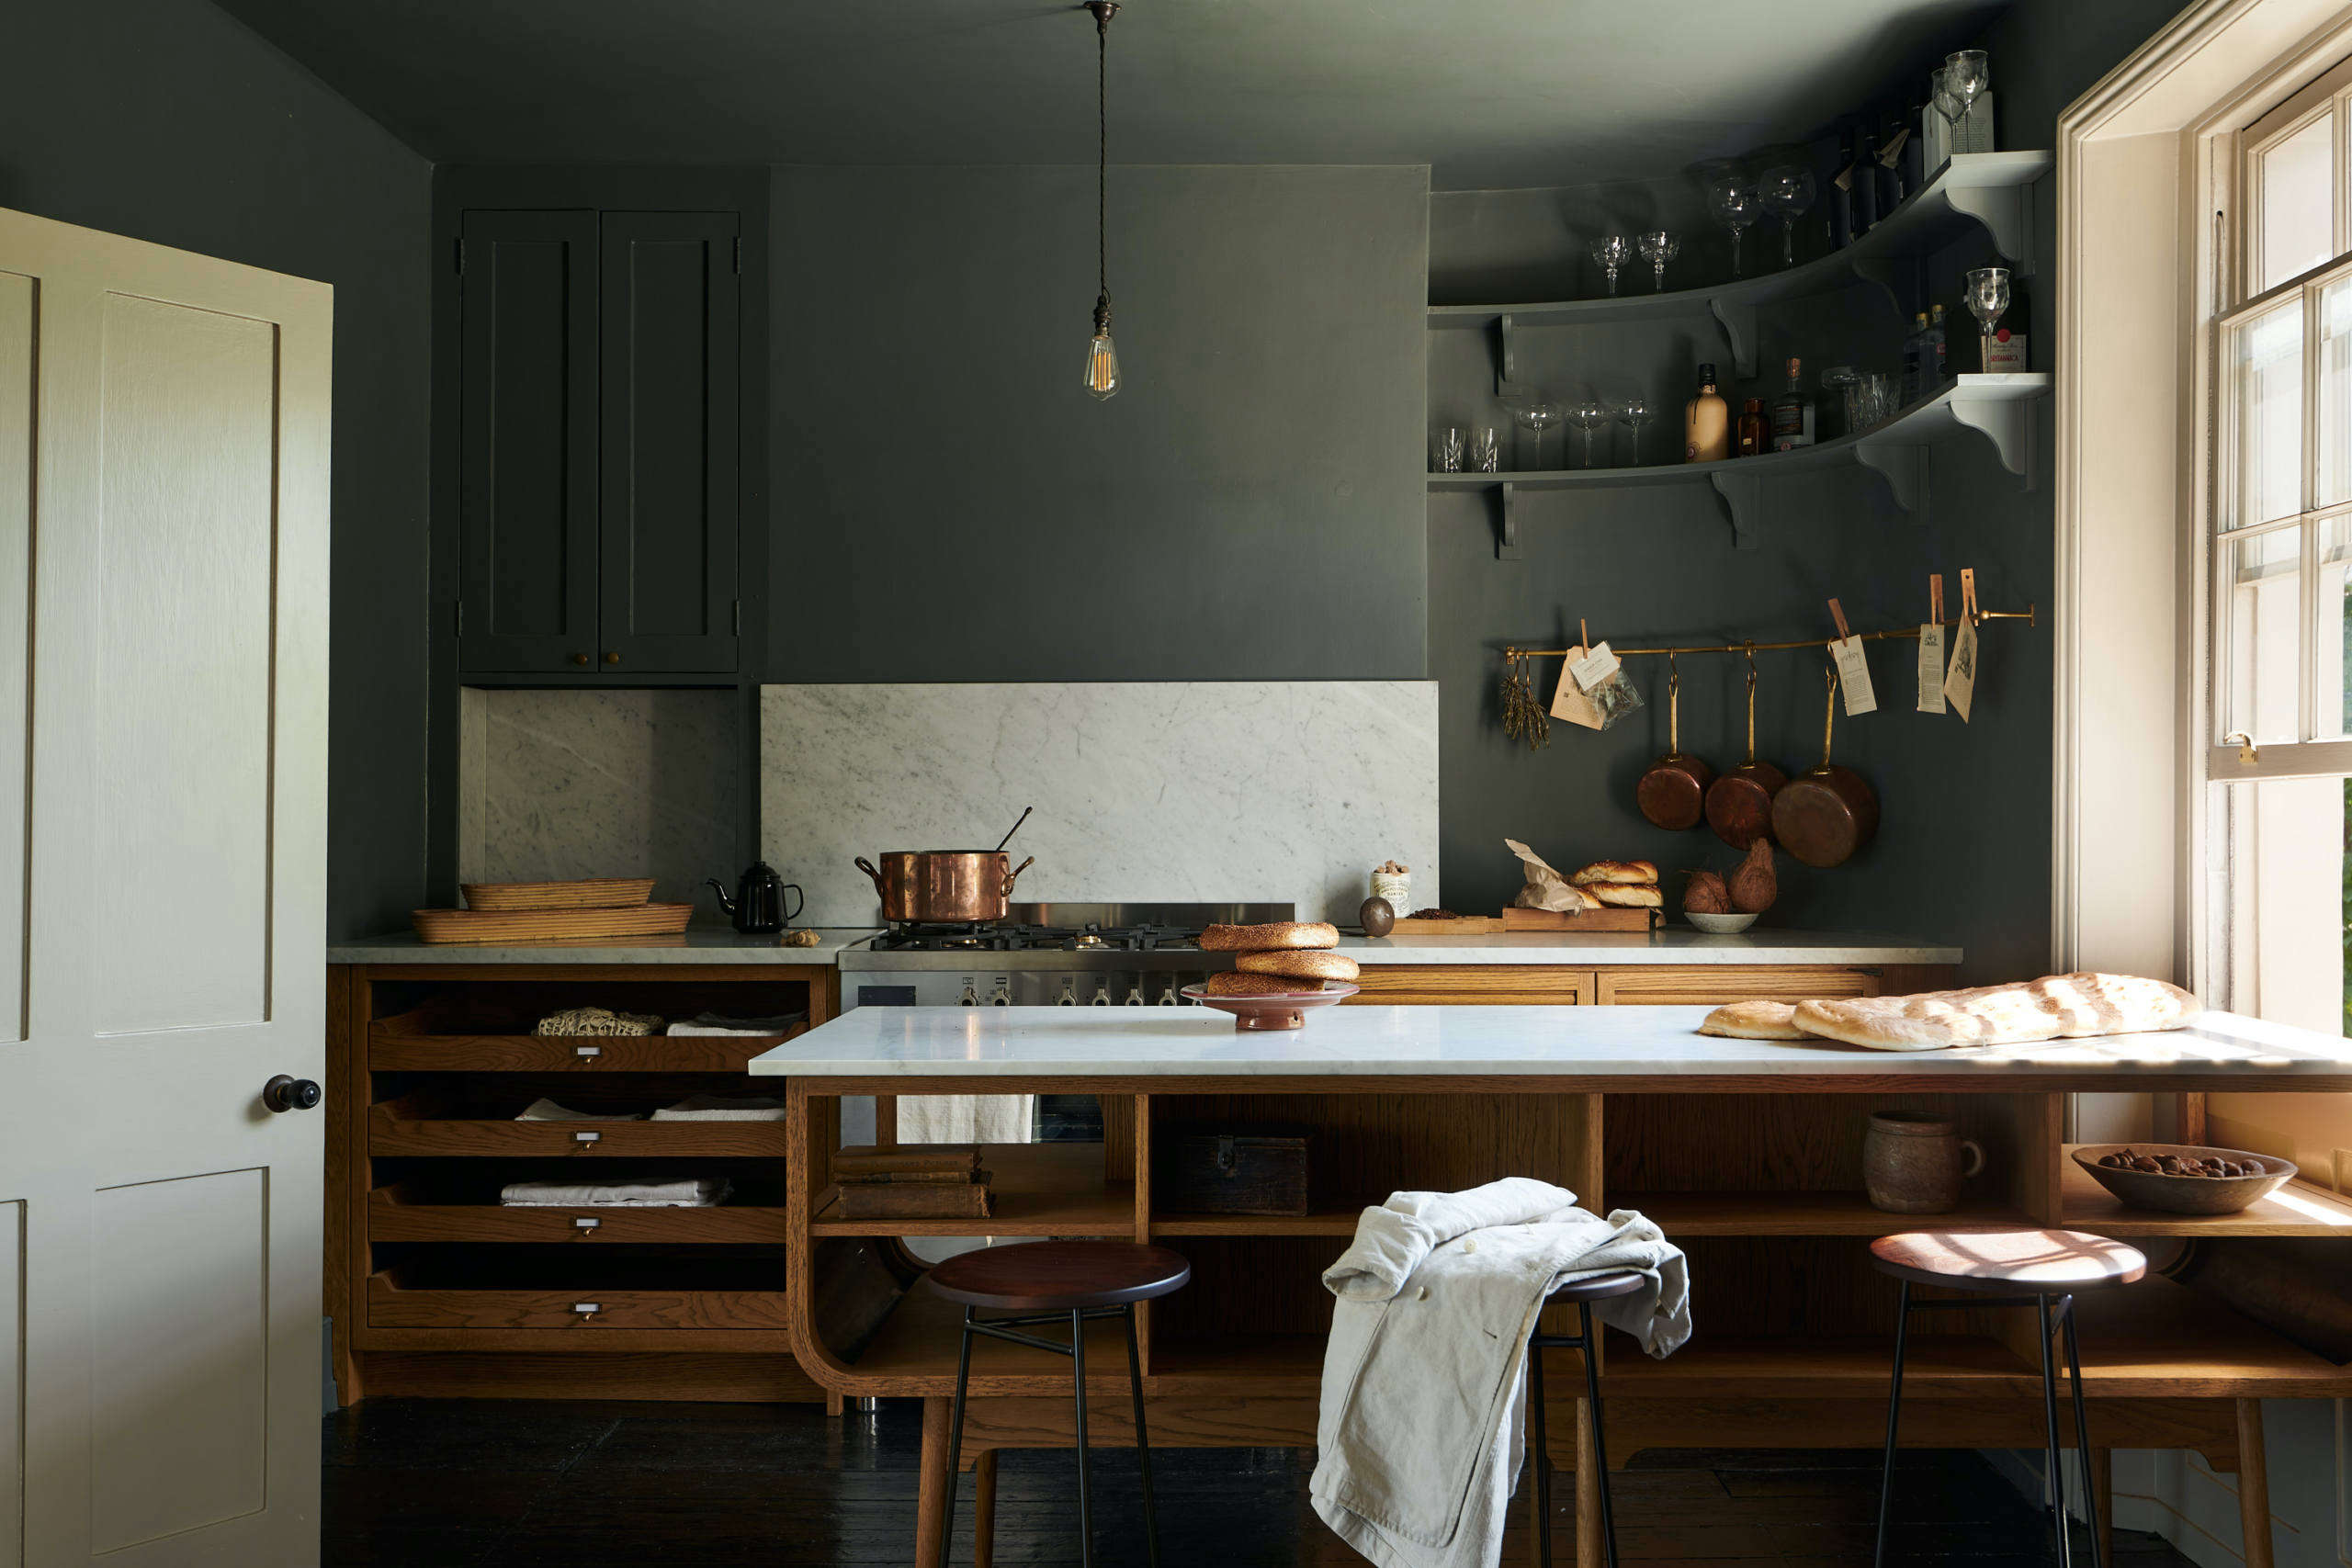 Kitchen of the Week: A London Kitchen Inspired by Traditional Haberdashery Stores - Remodelista